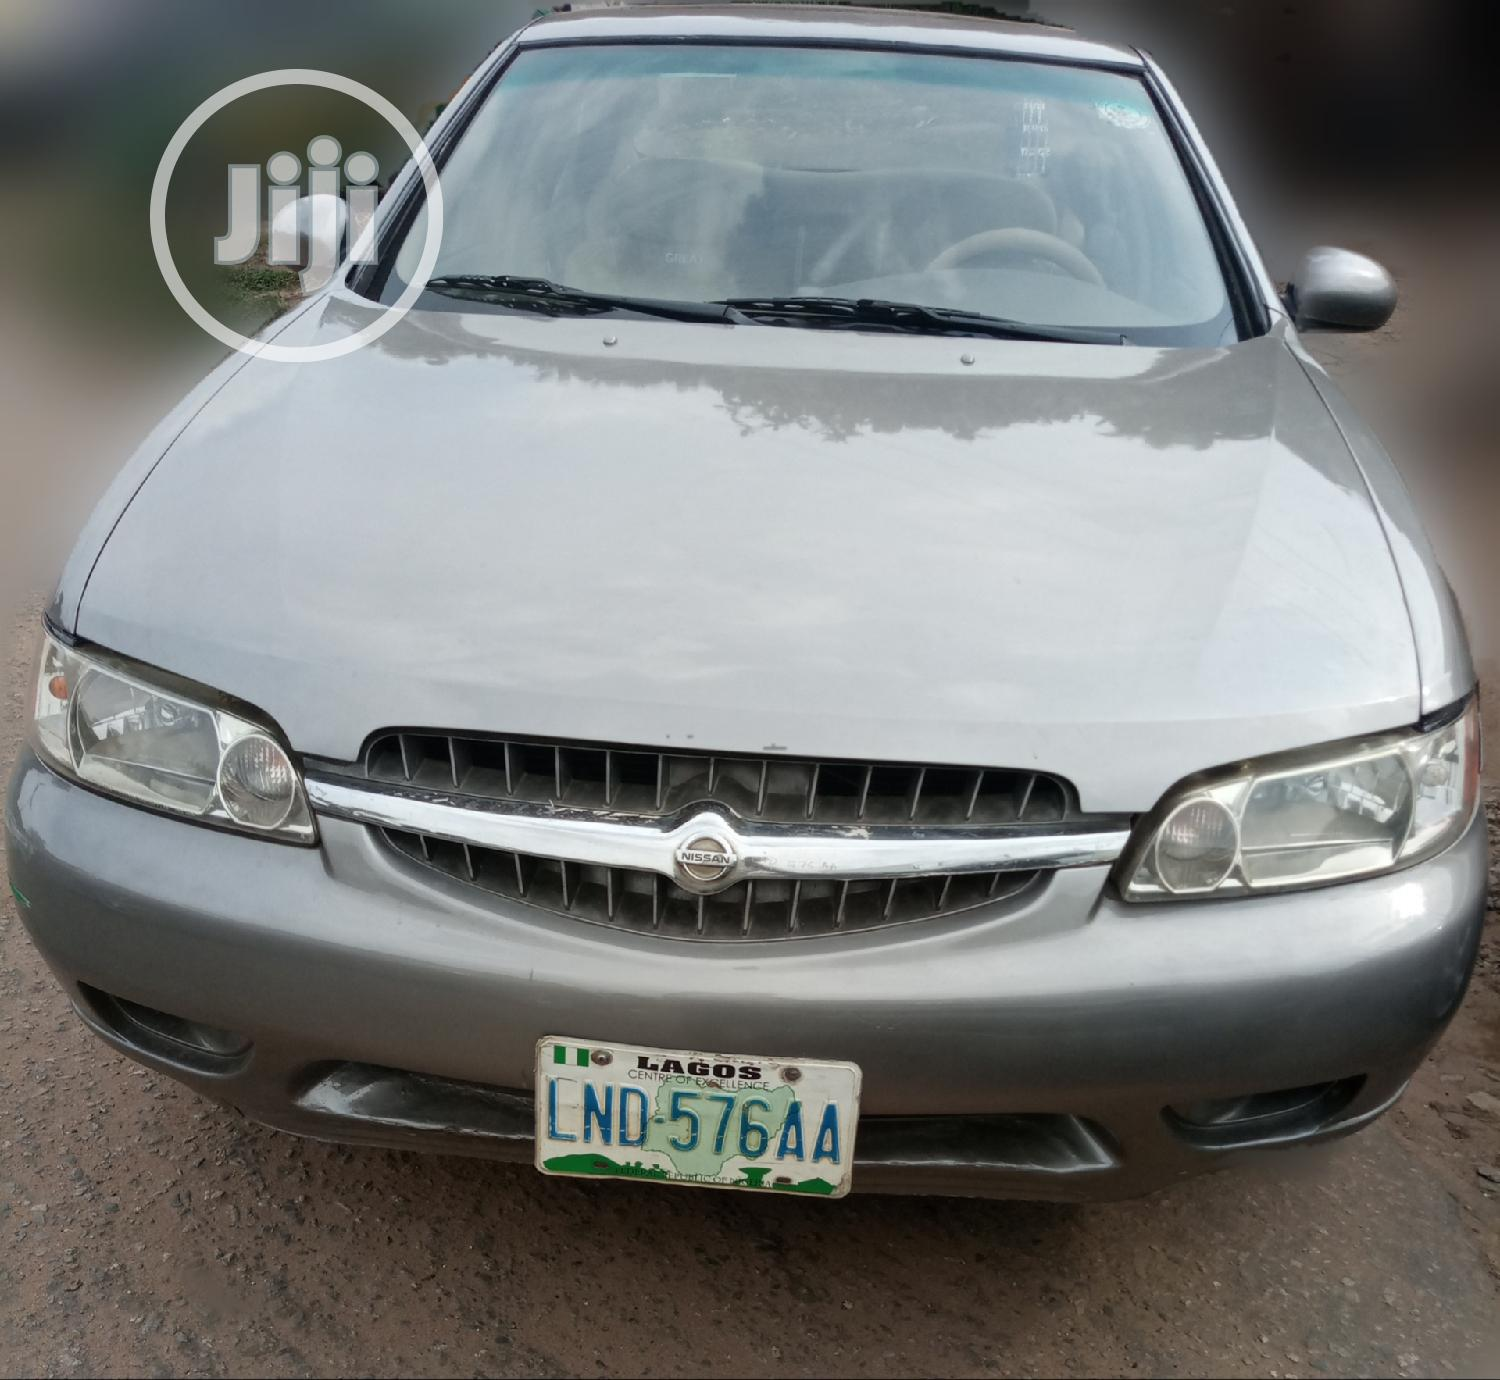 Nissan Altima 2001 Automatic Gray In Ibadan Cars Okpro Brothers Investment Jiji Ng For Sale In Ibadan Buy Cars From Okpro Brothers Investment On Jiji Ng